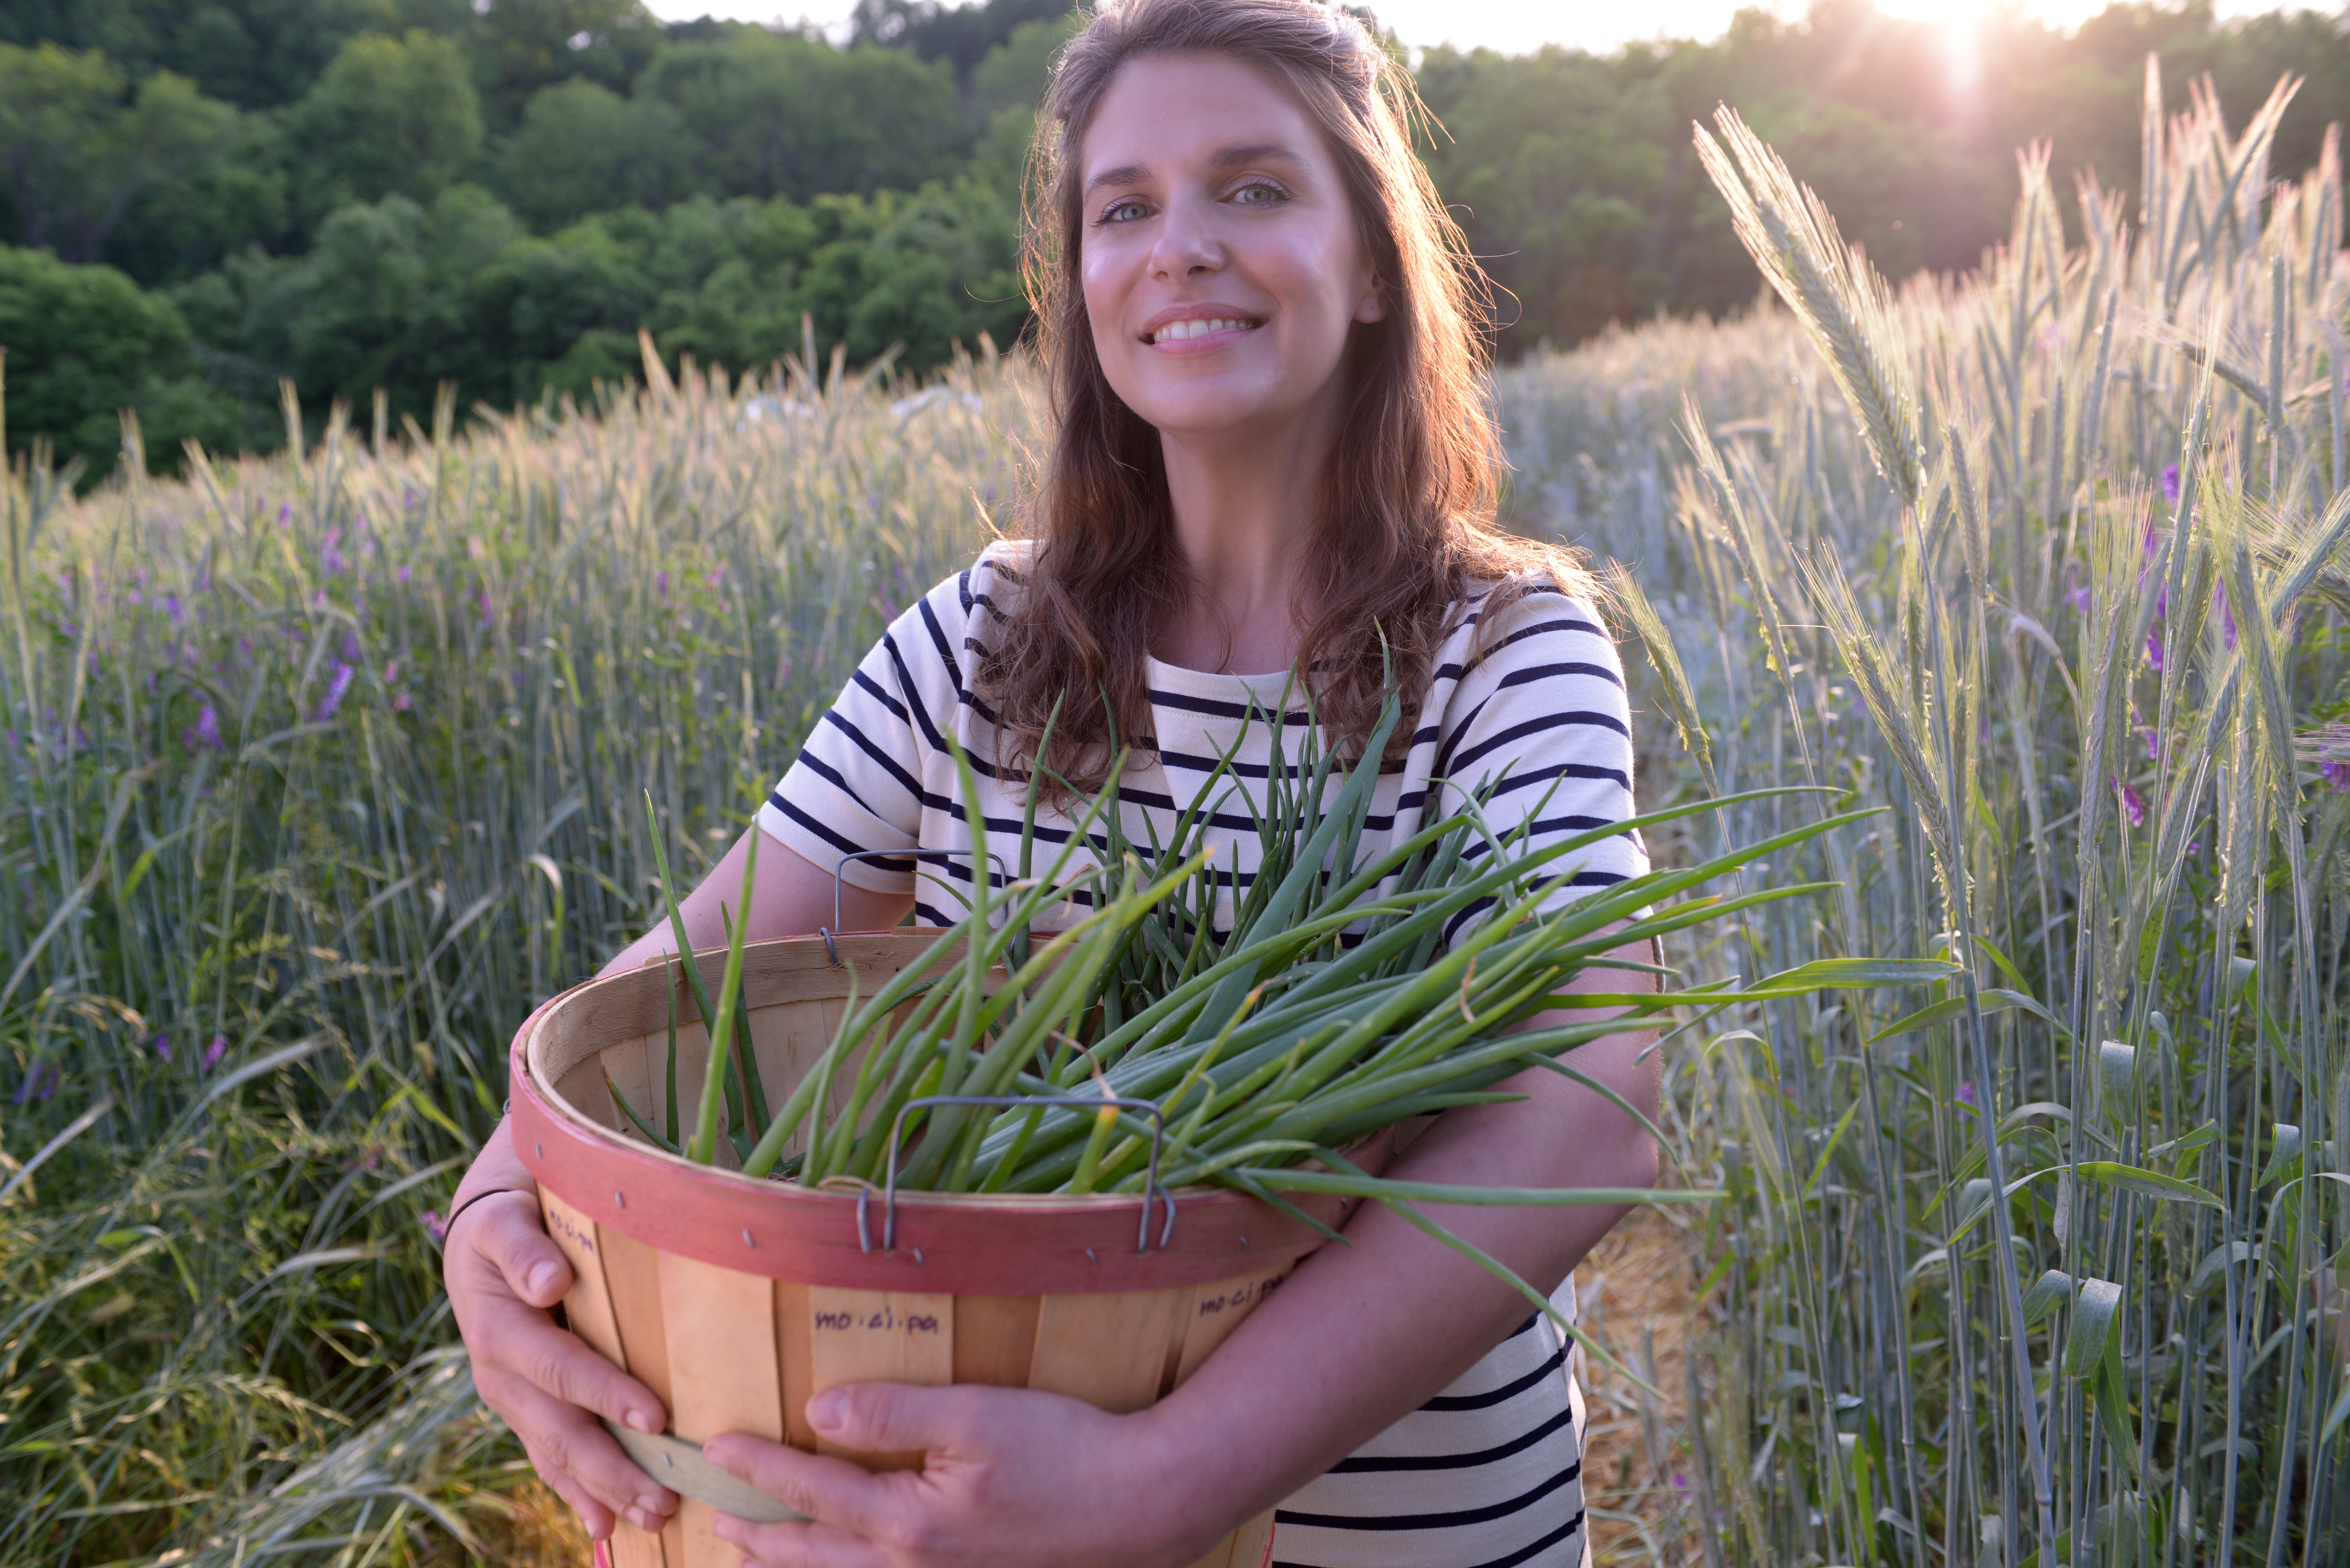 Vivian Howard on her show, 'A Chef's Life'